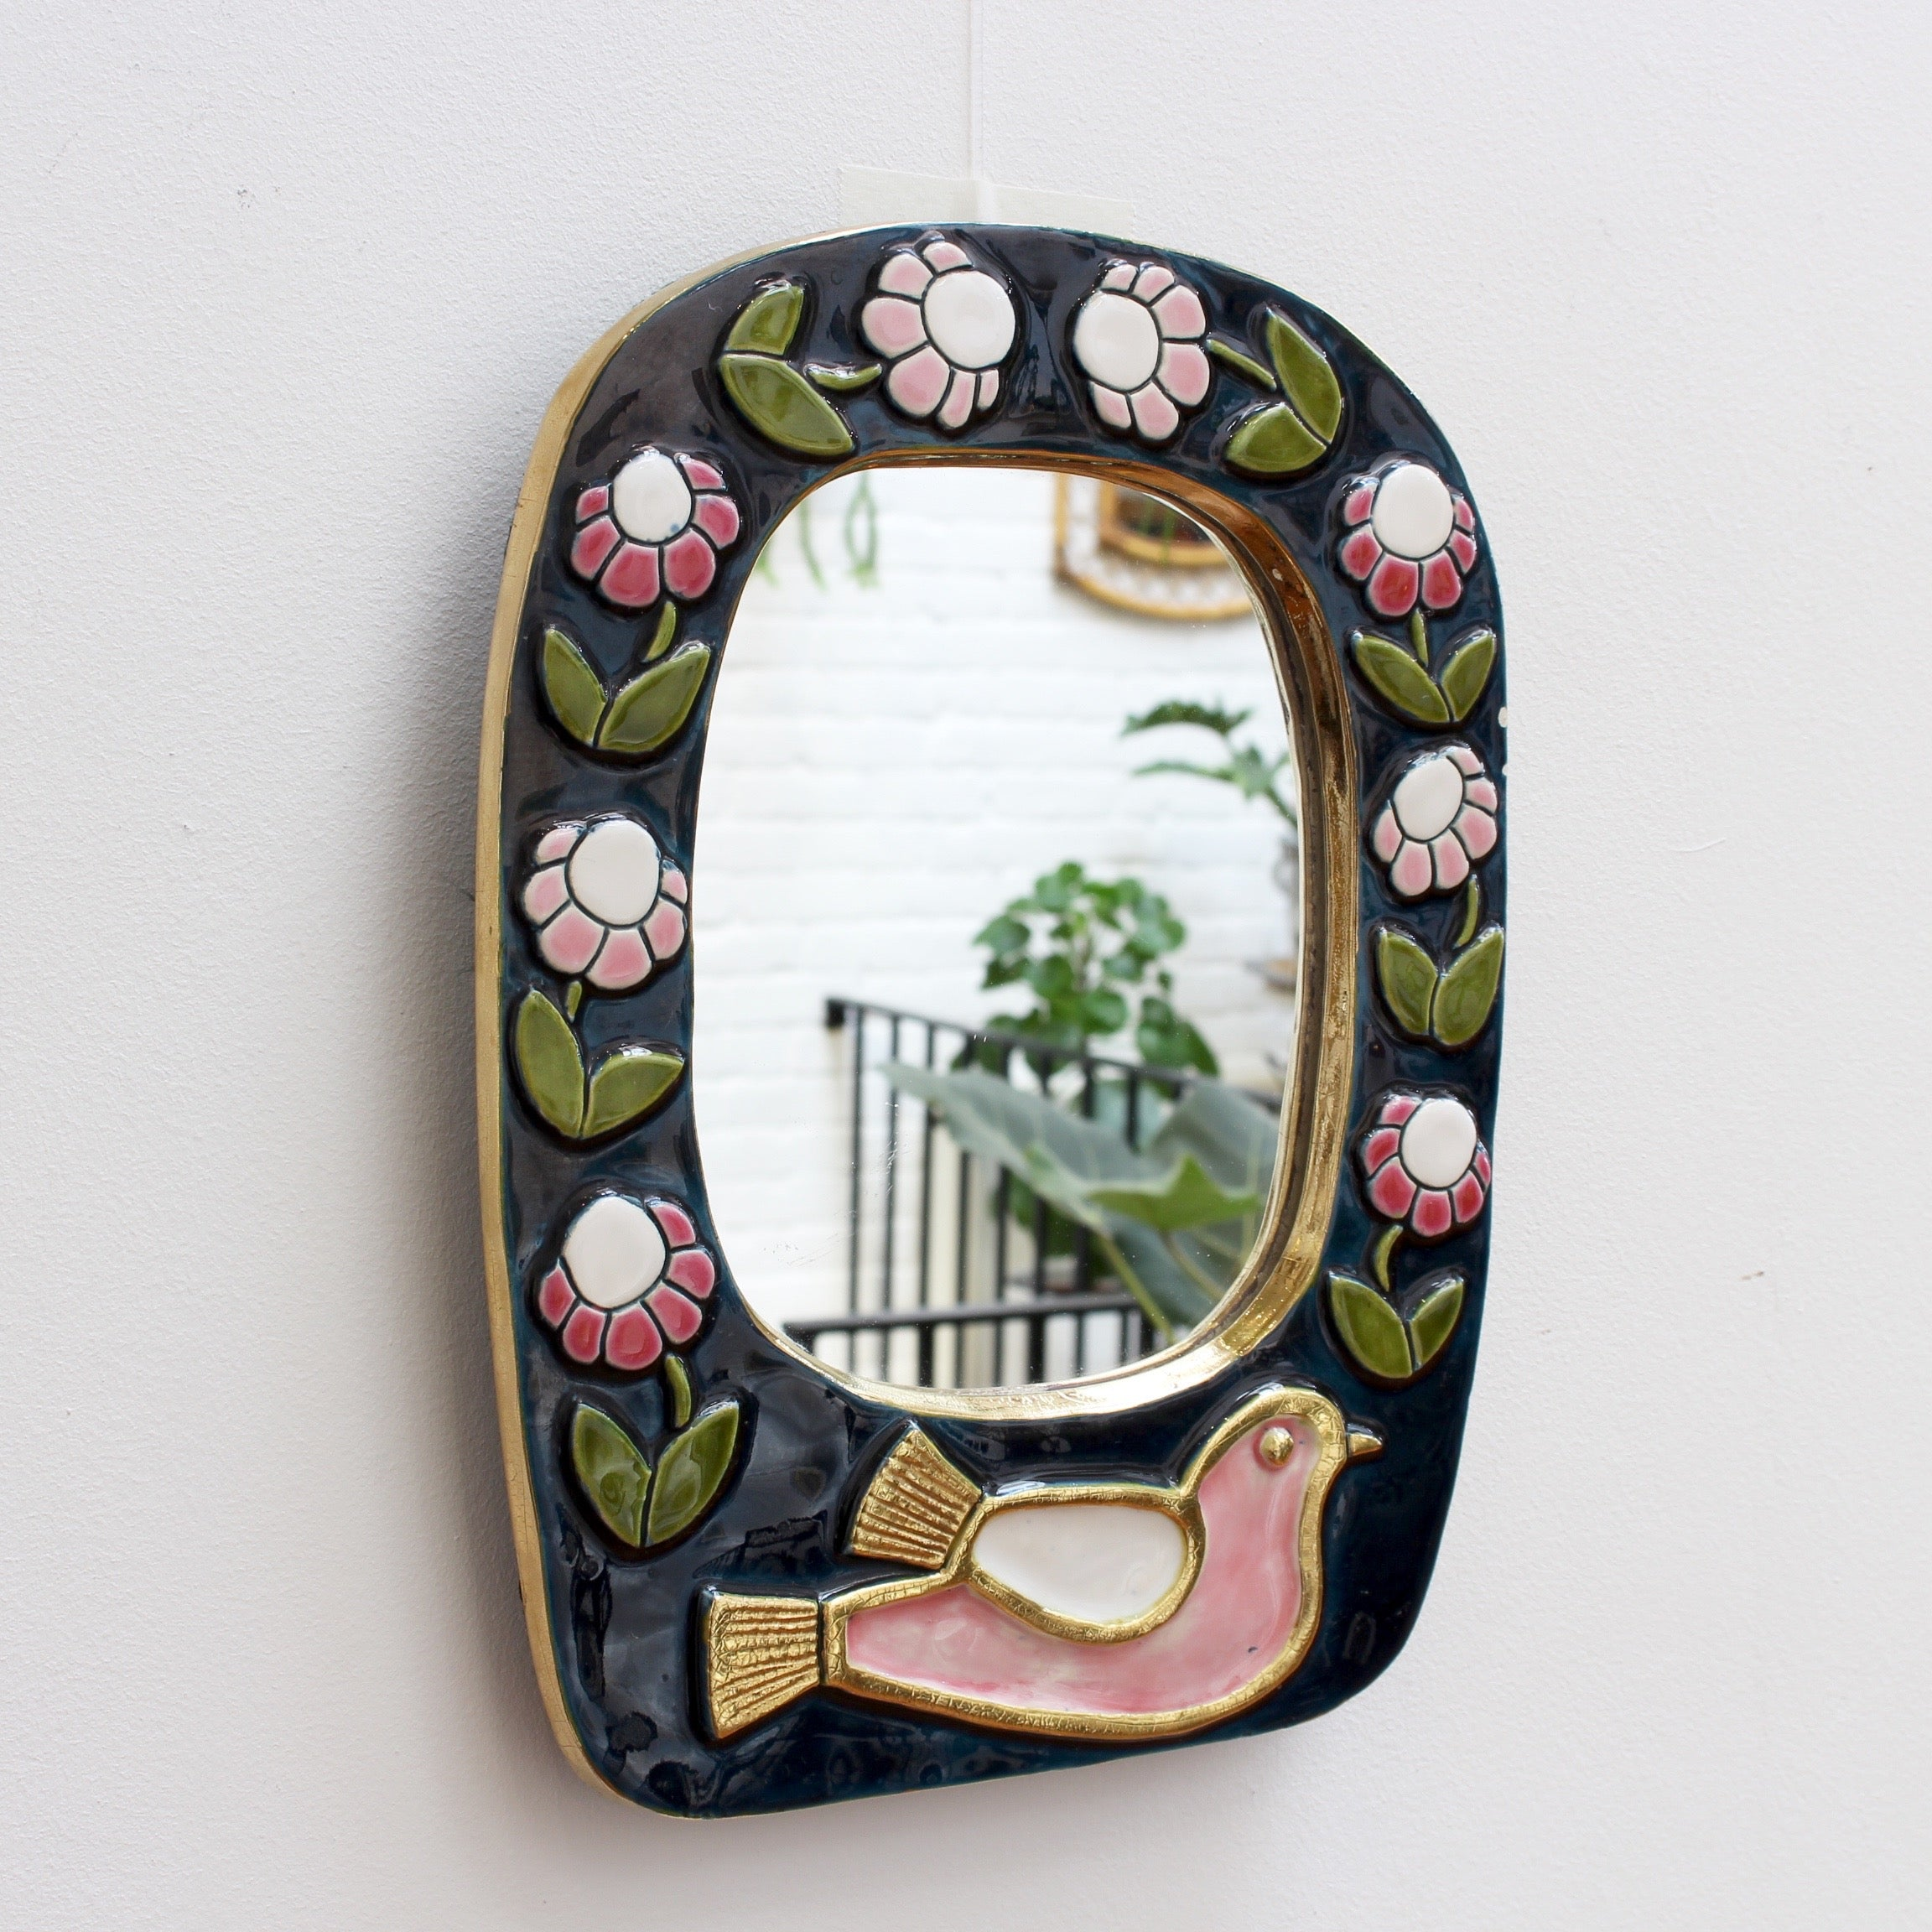 Ceramic Wall Mirror with Flower Motif and Stylised Bird by François Lembo (circa 1970s)